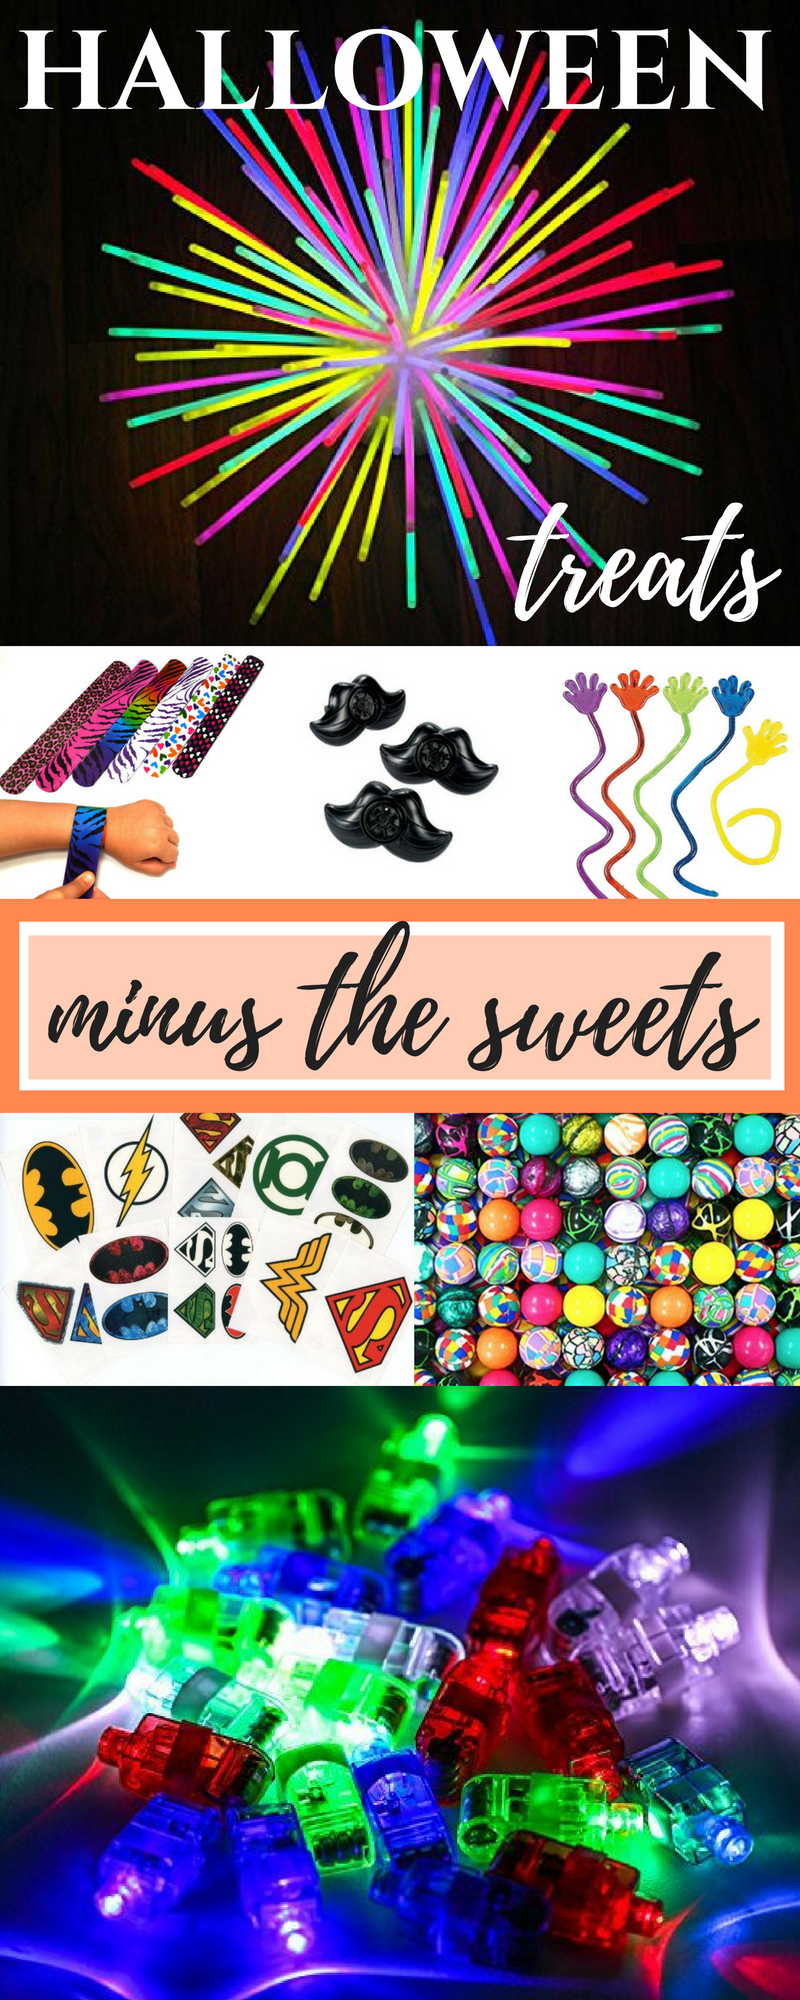 halloween-treats-minus-the-sweets-tinsel-wheat